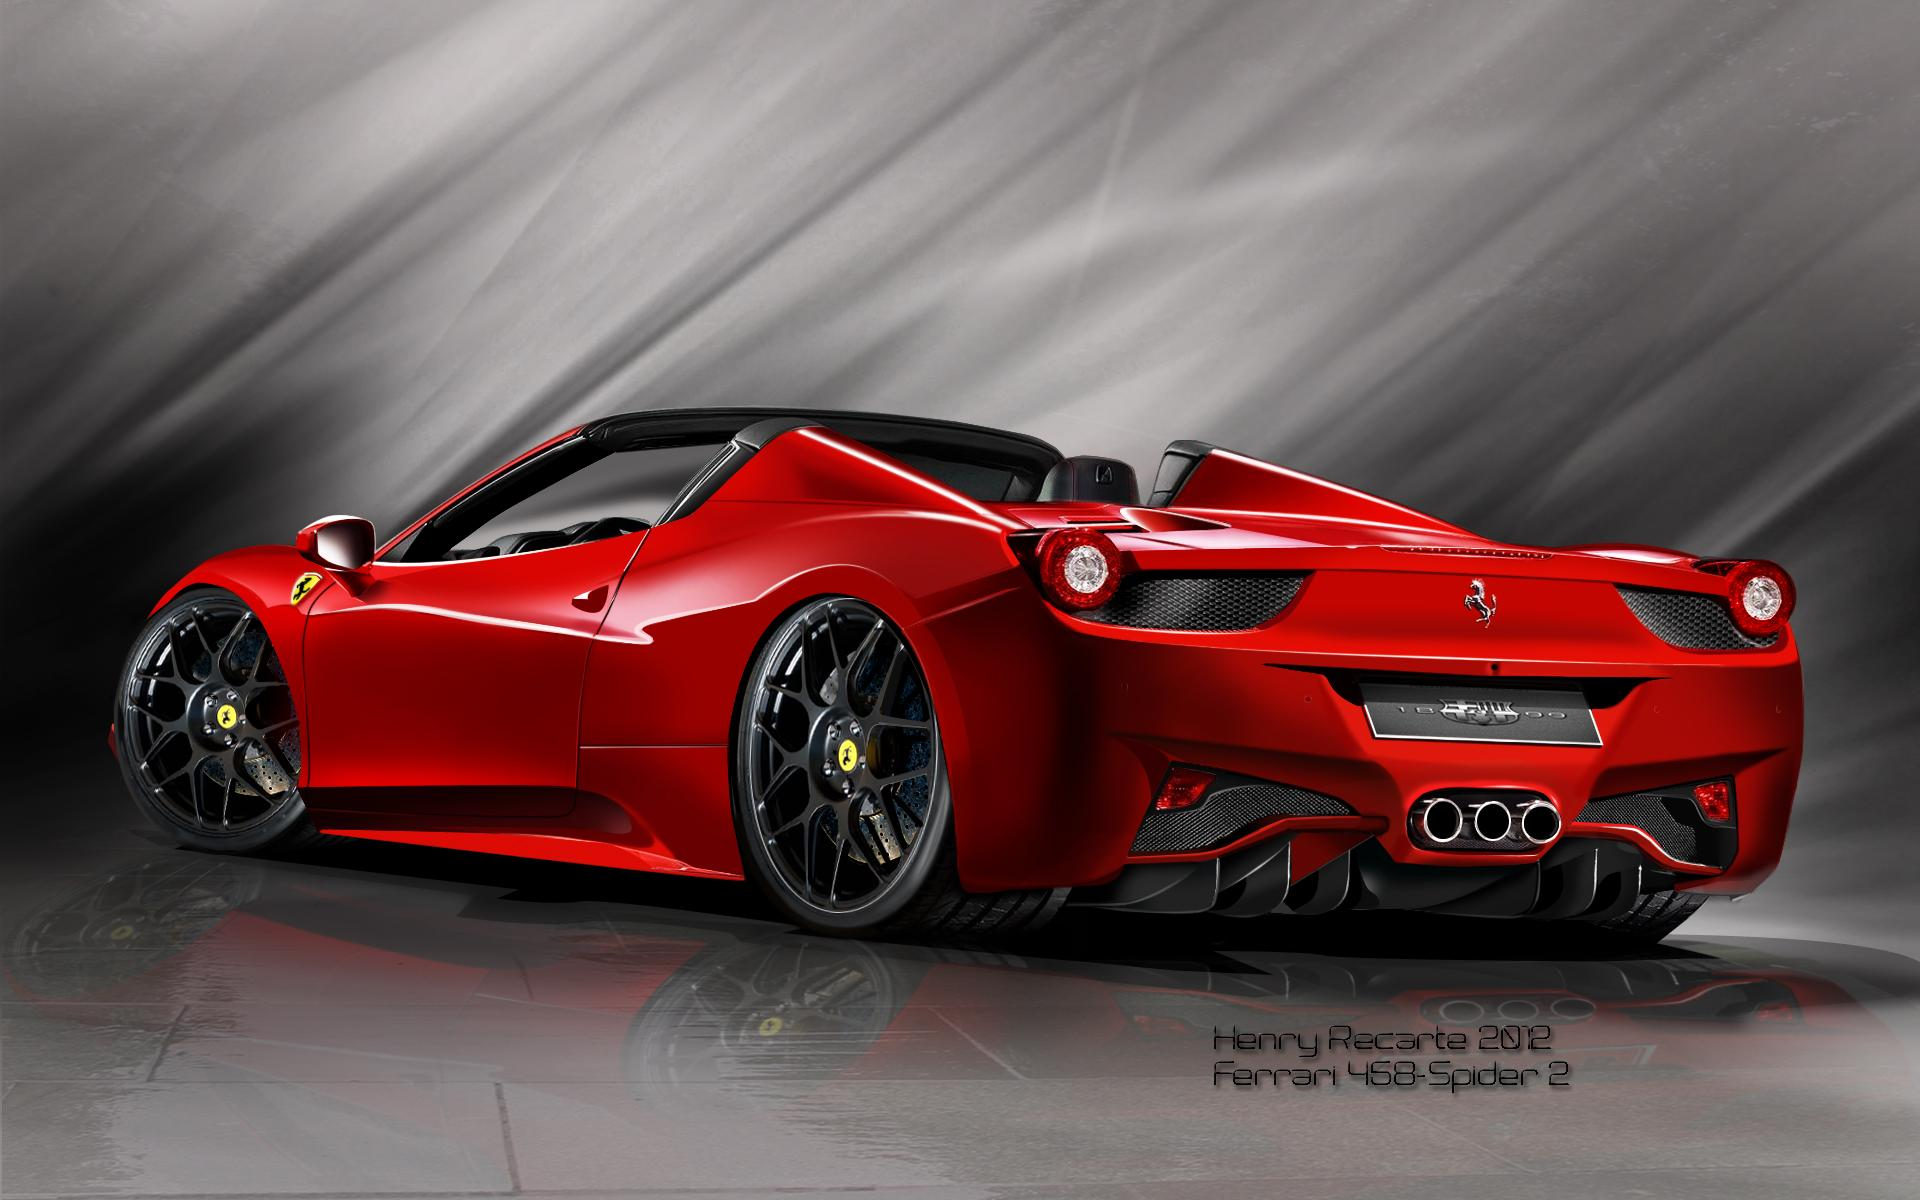 1920x1200 - Ferrari 458 Italia Wallpapers 27